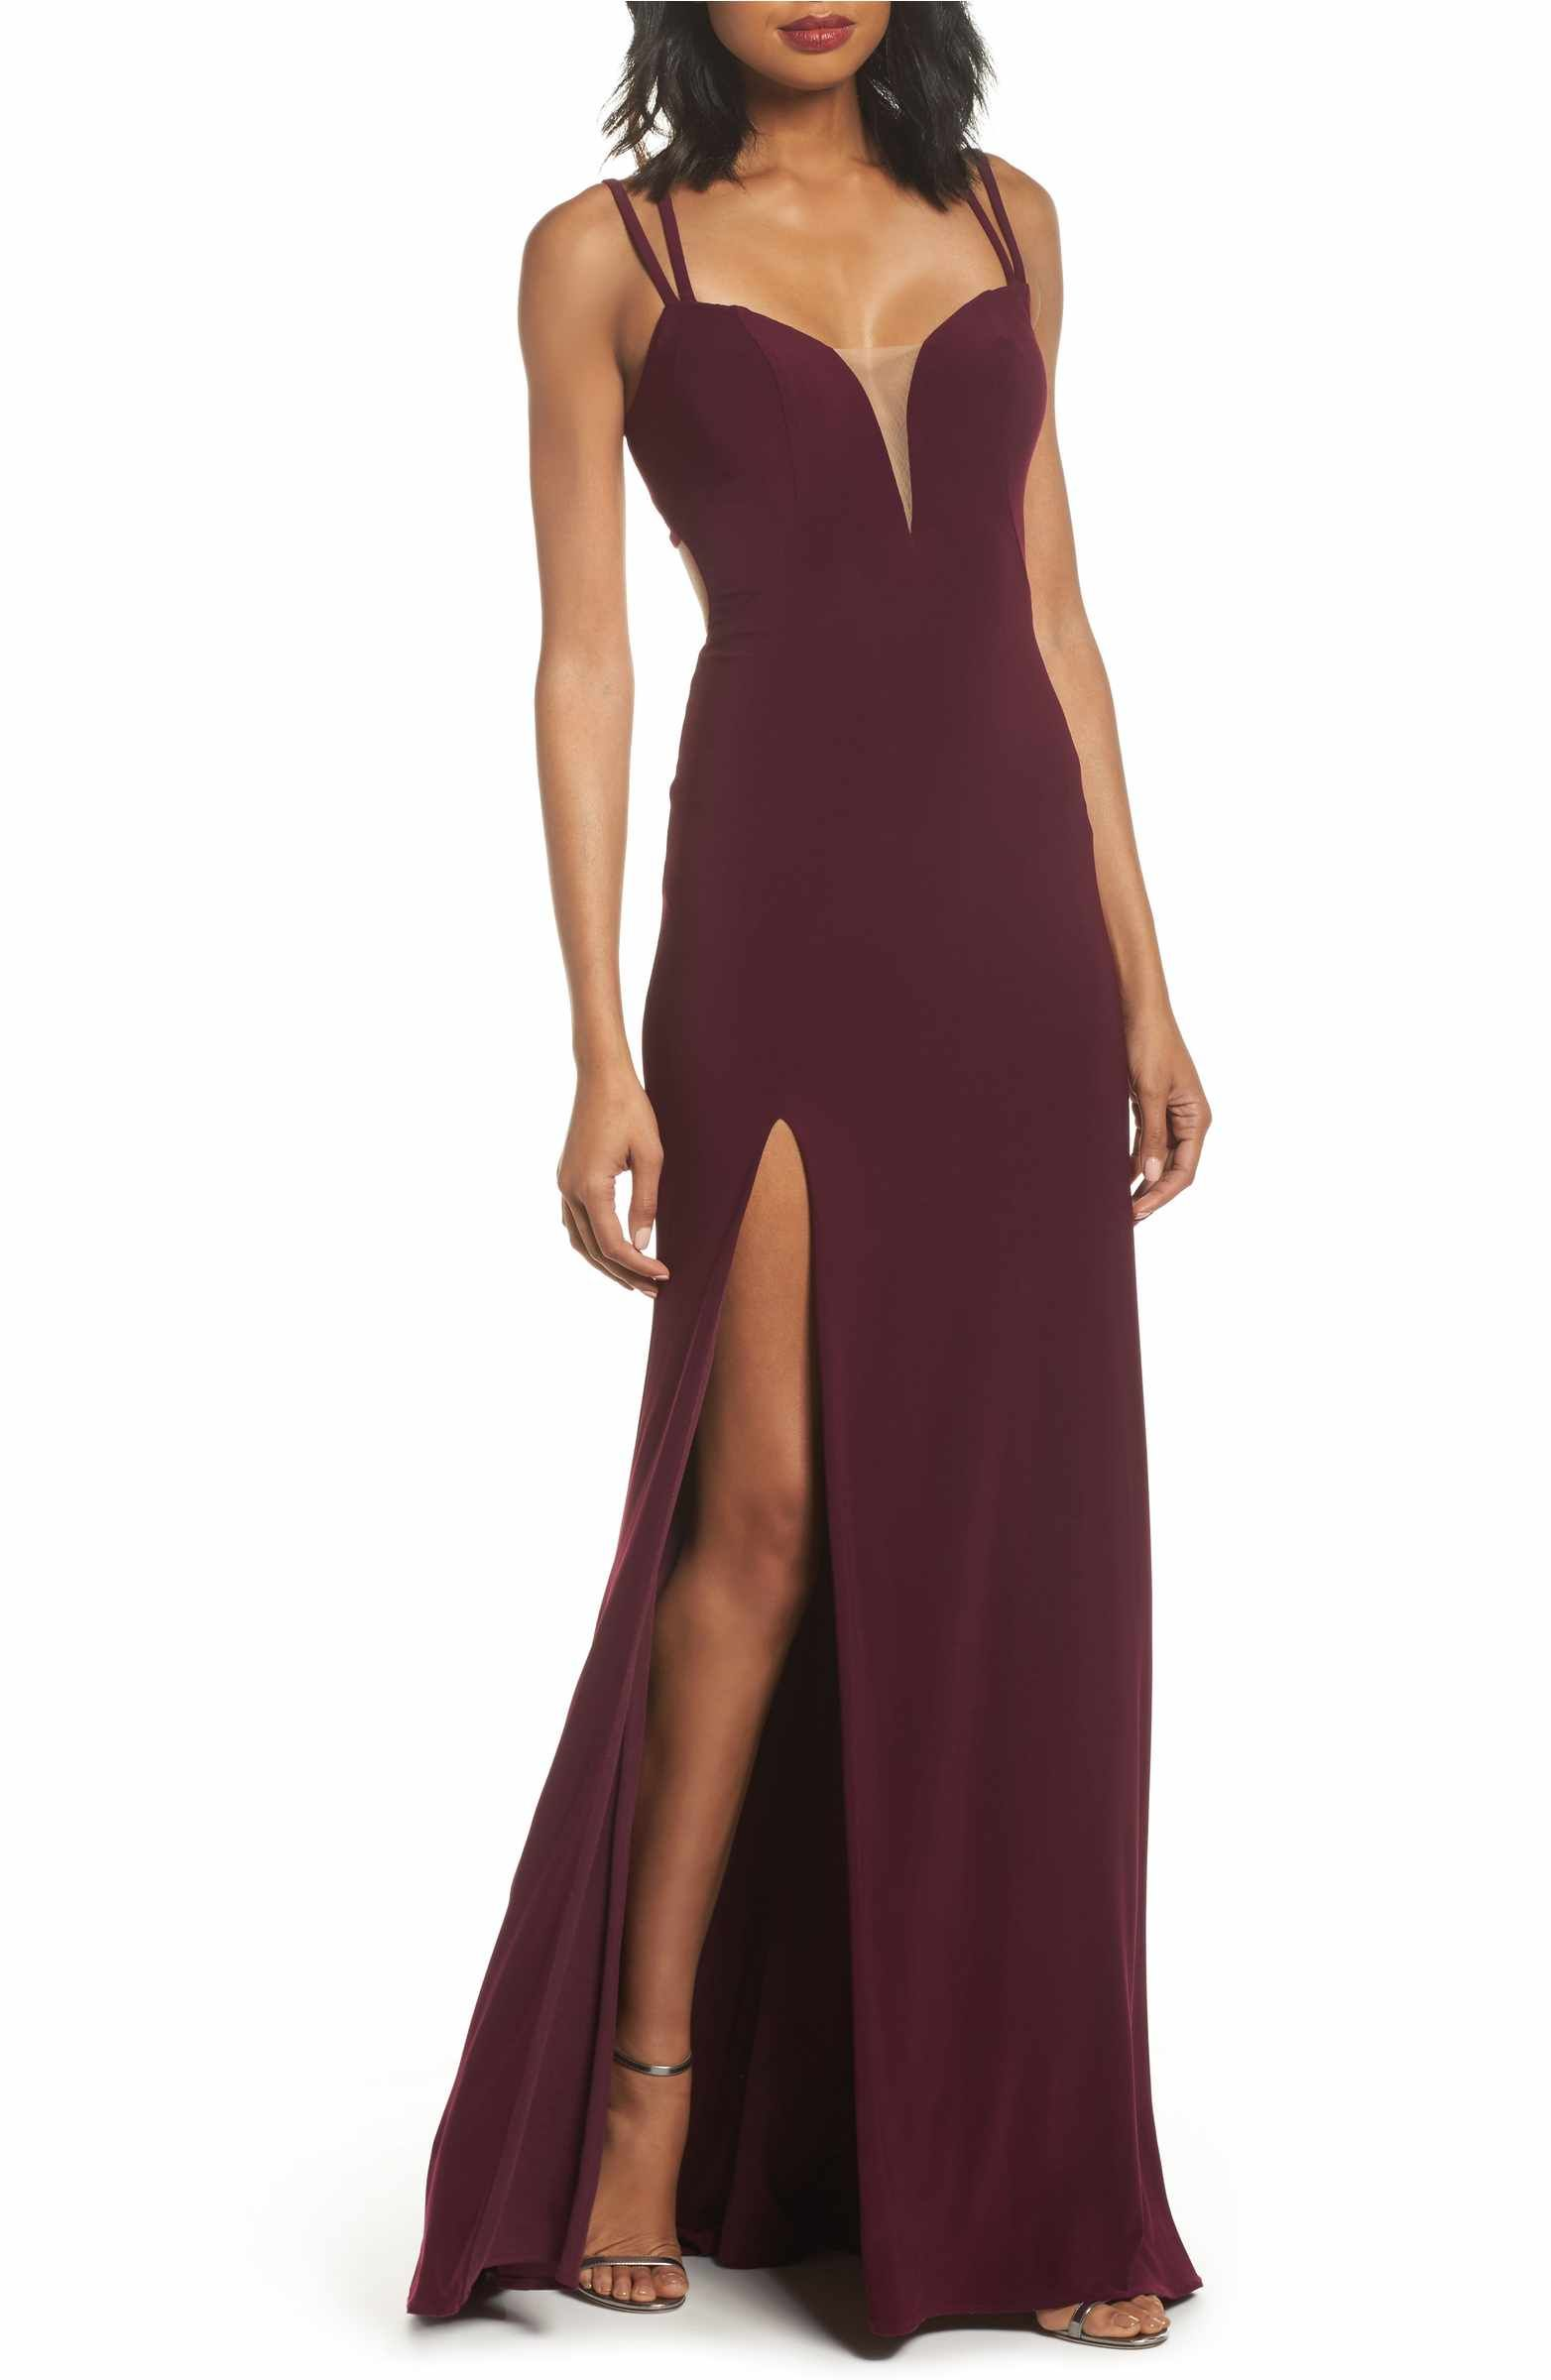 Main image la femme open back jersey gown super casual and super